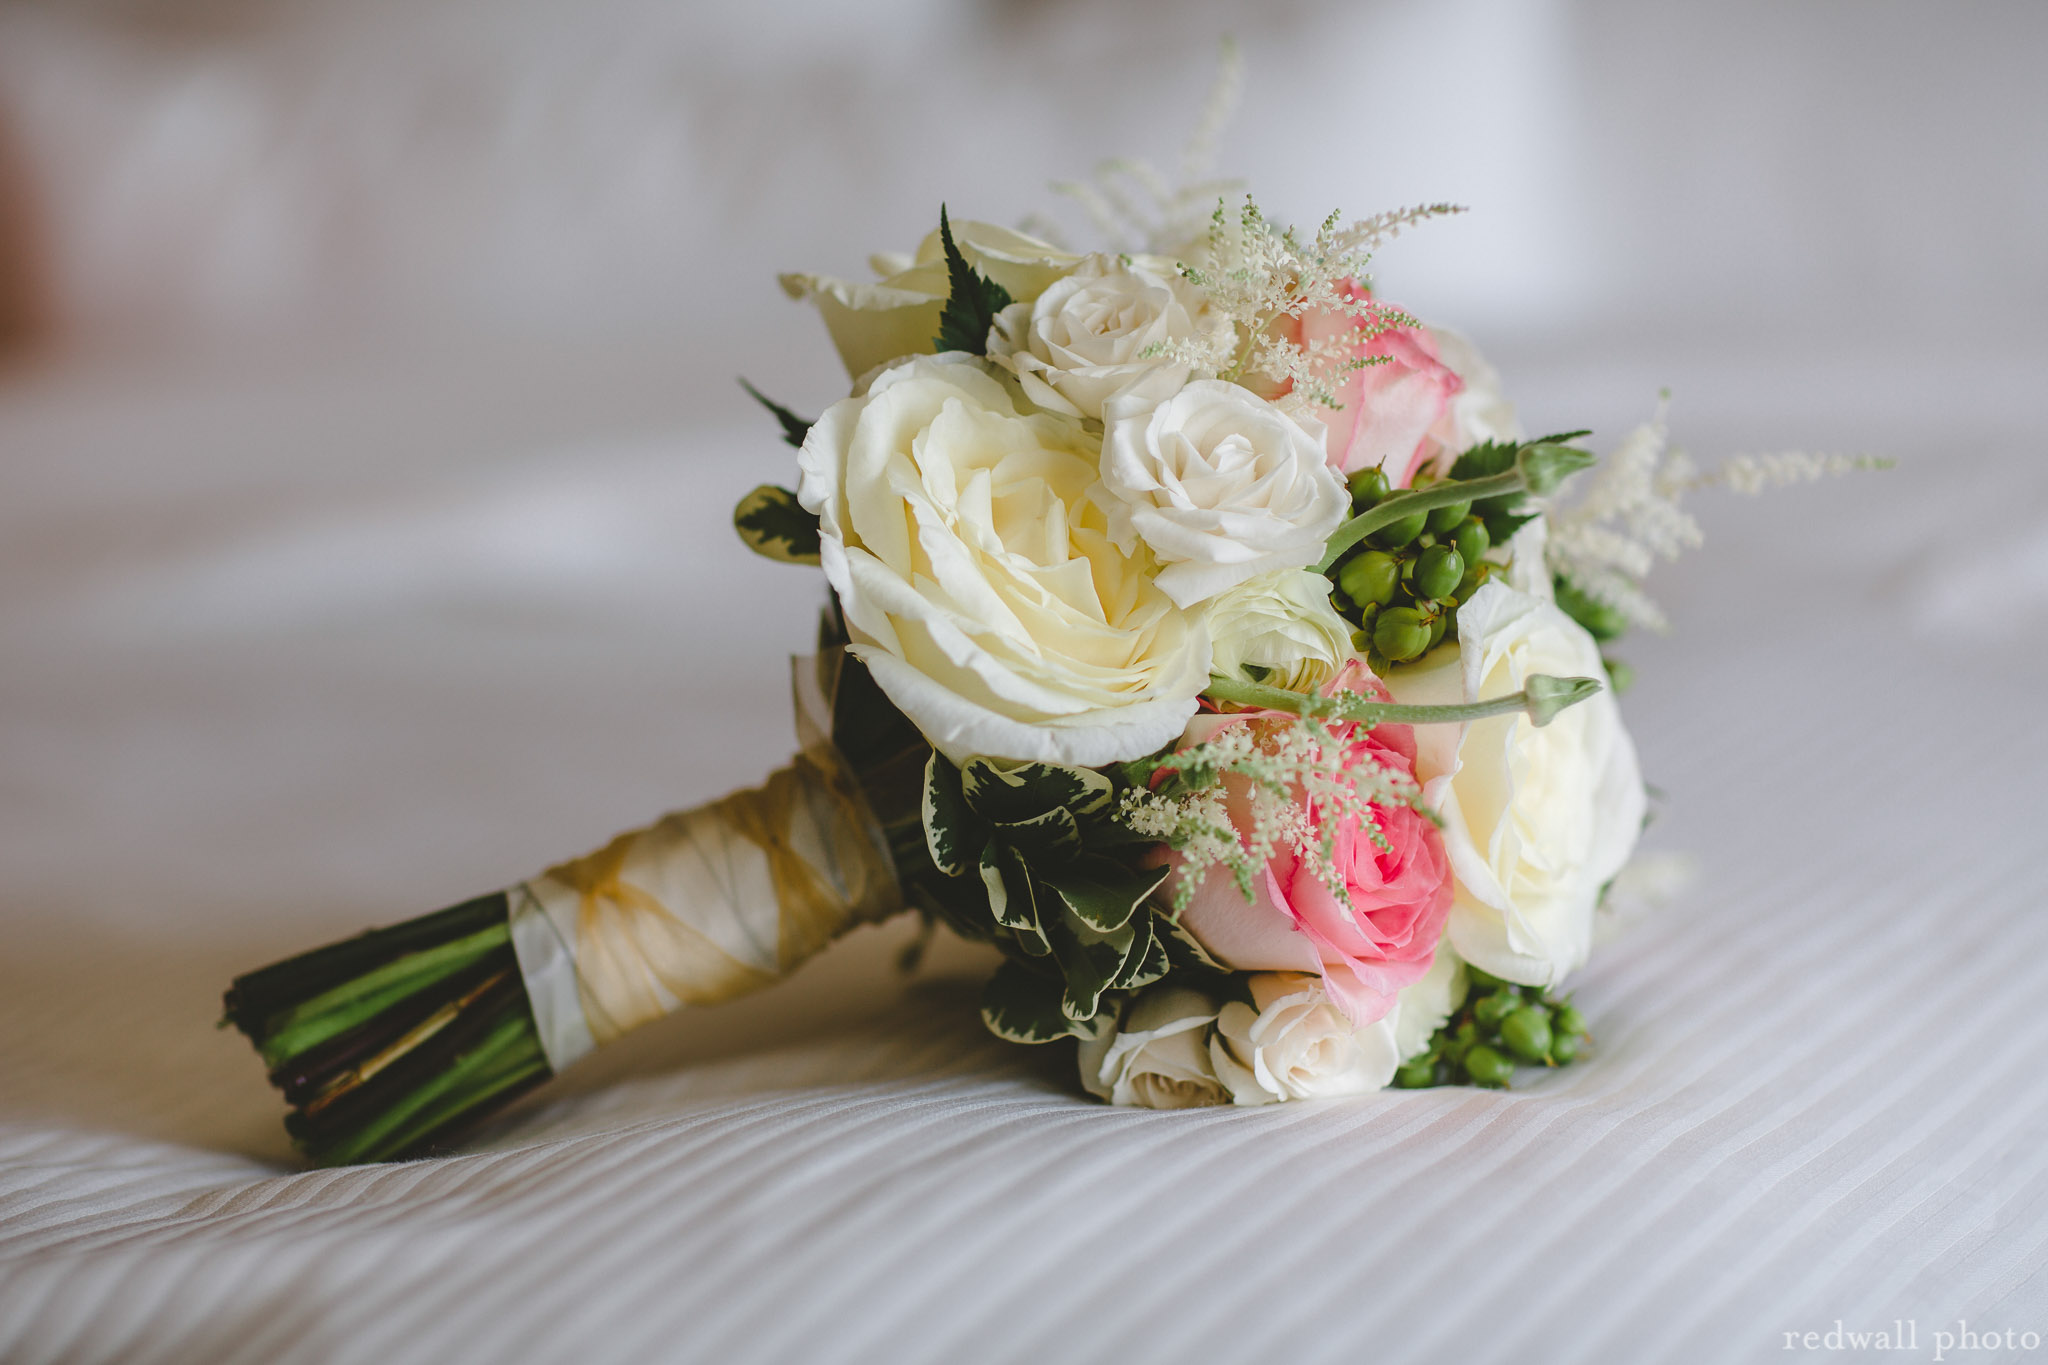 roses & astilbe with gold ribbon wrap